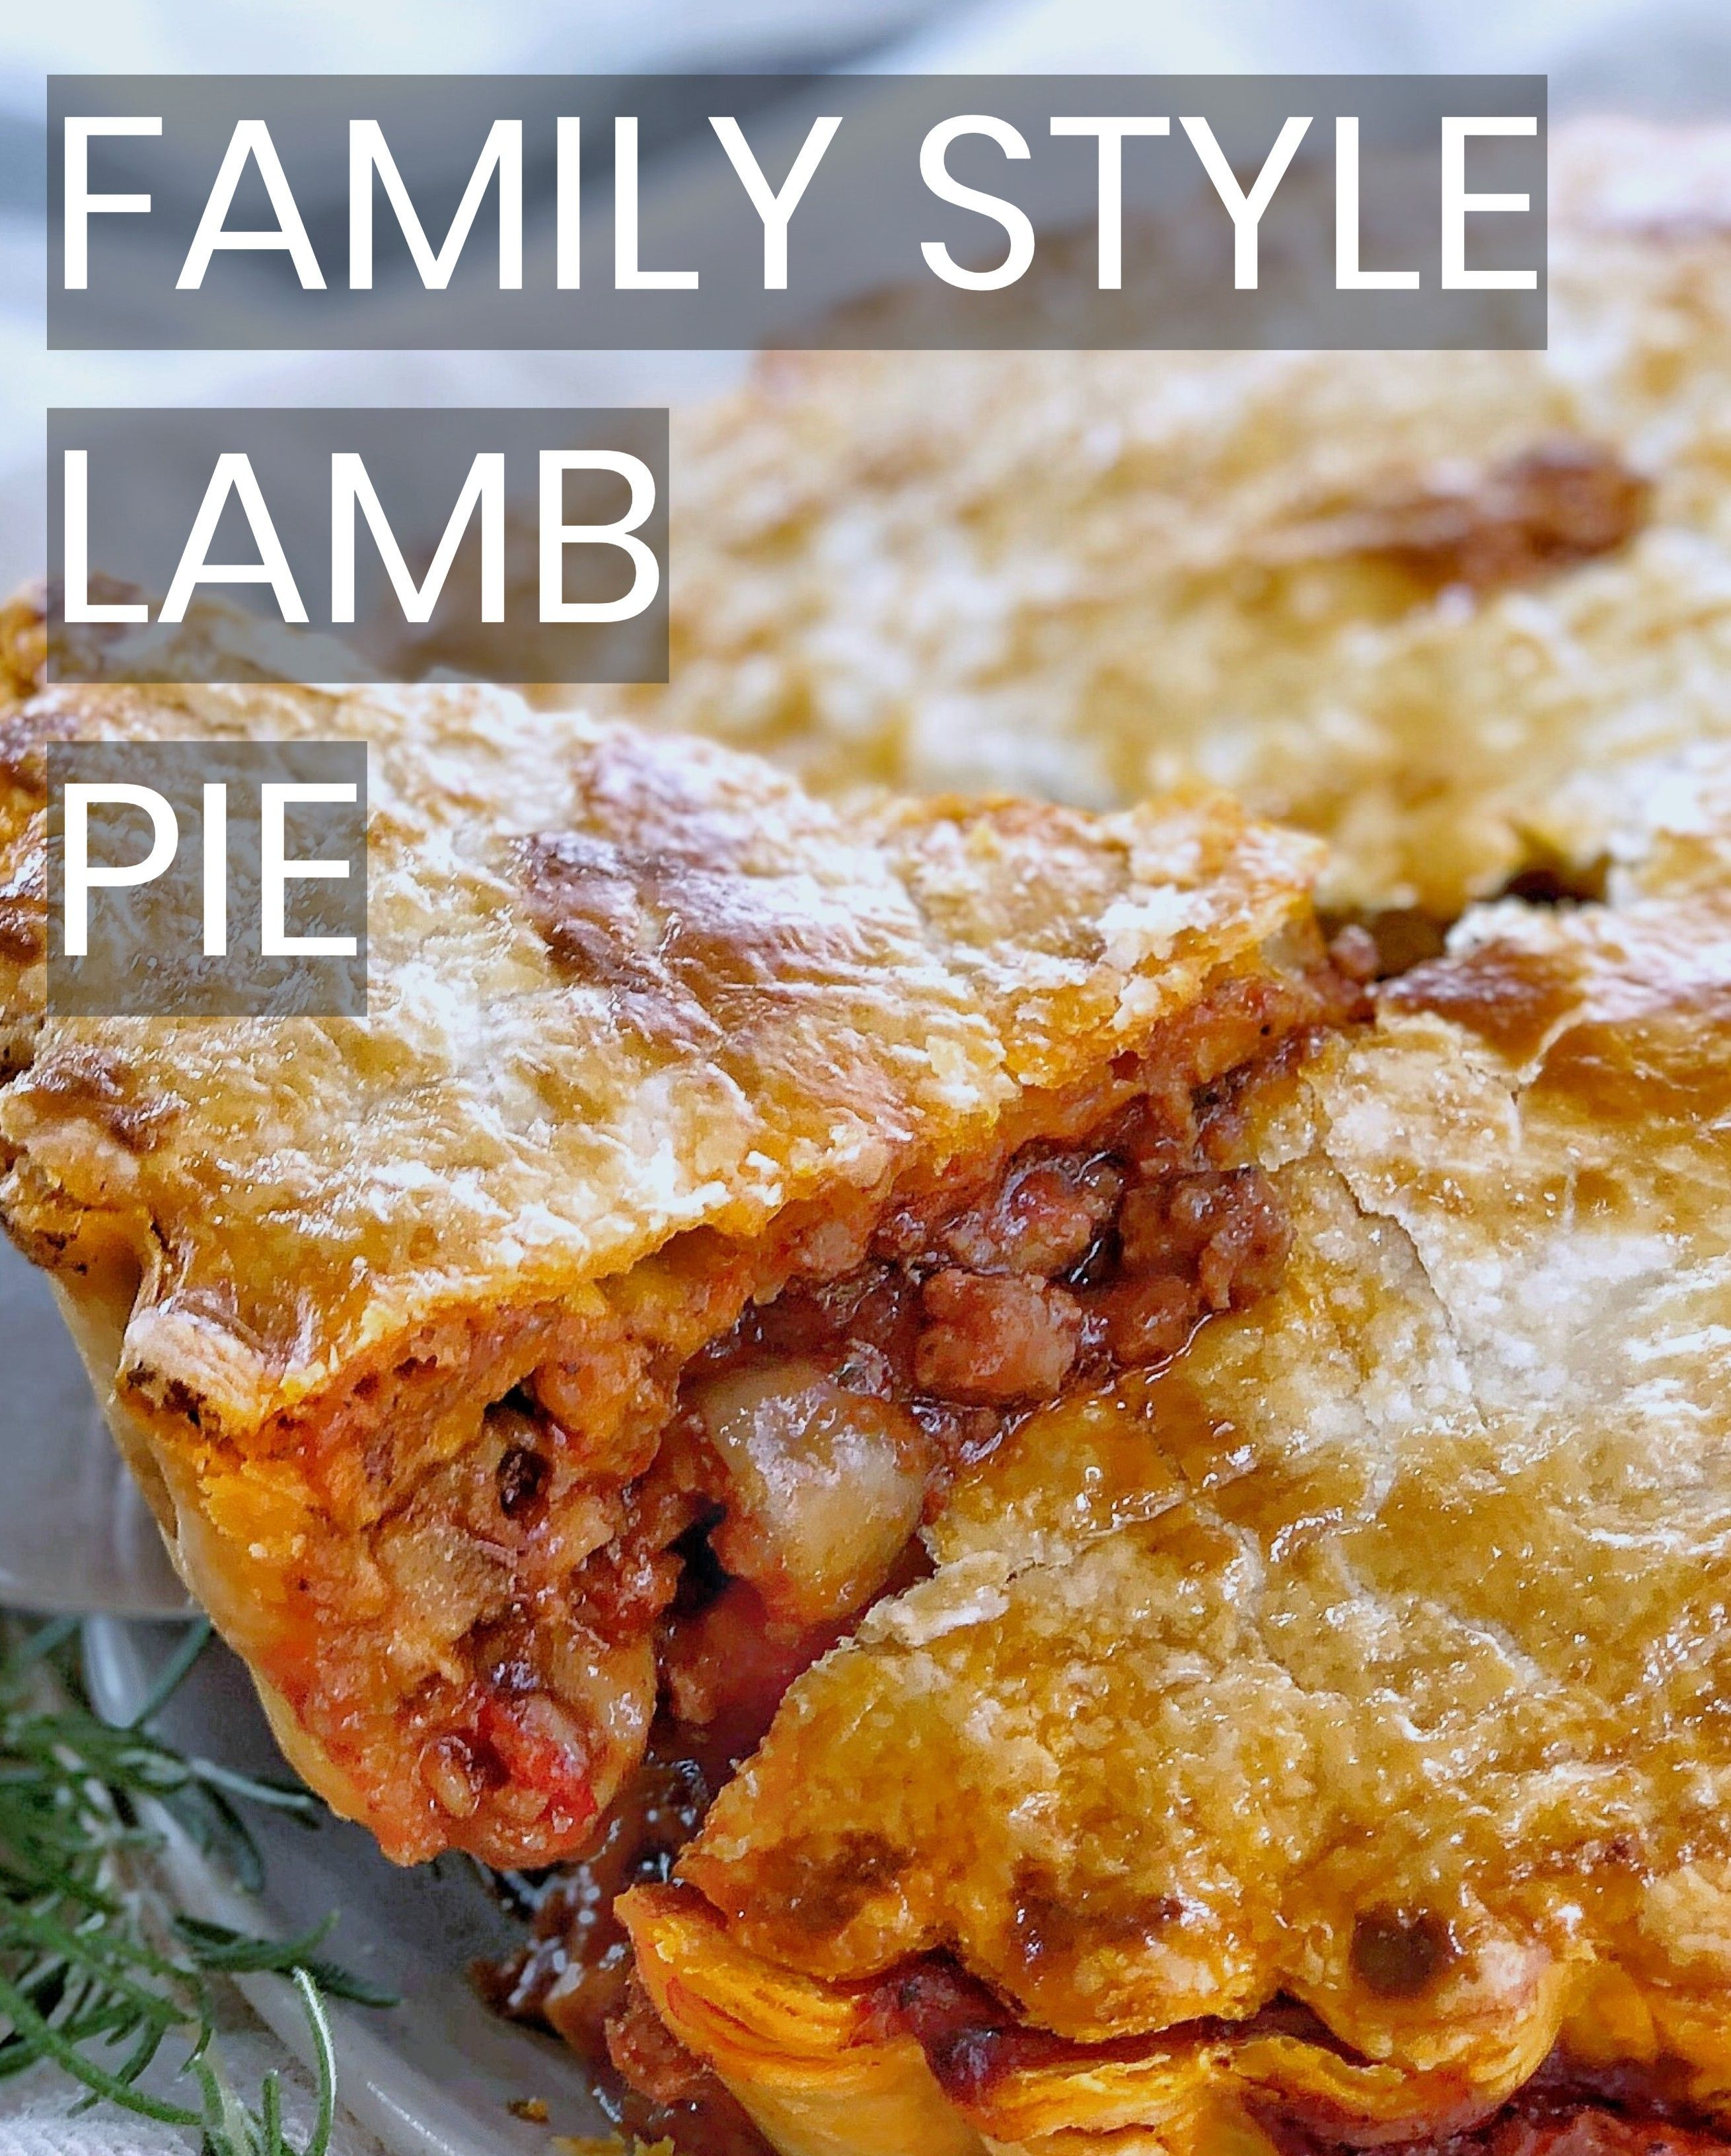 Lamb Mince Pie A Rich And Hearty Family Pie Chef Not Required Recipe In 2020 Easy Lamb Recipes Lamb Recipes Lamb Pie